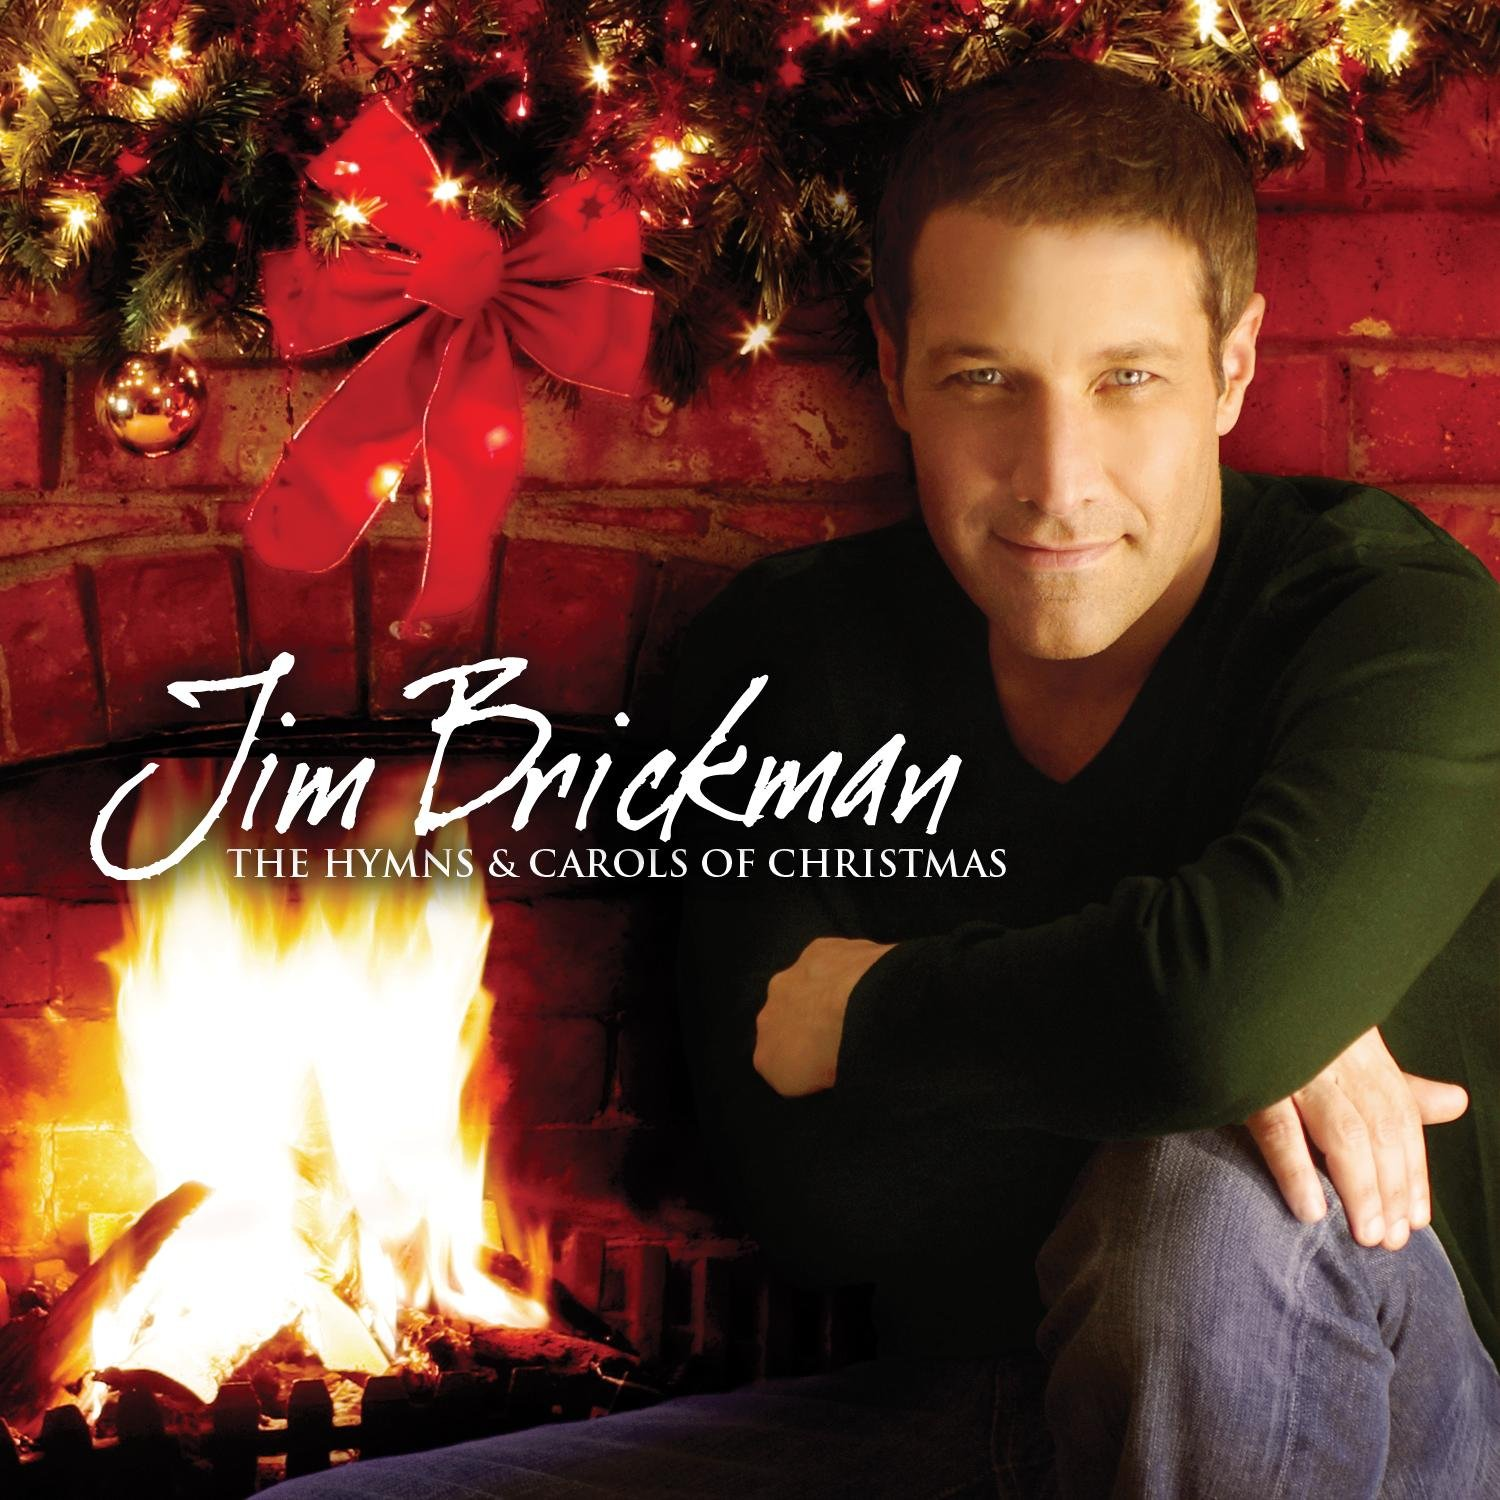 Jim Brickman - Hymns & Carols Of Christmas - Amazon.com Music